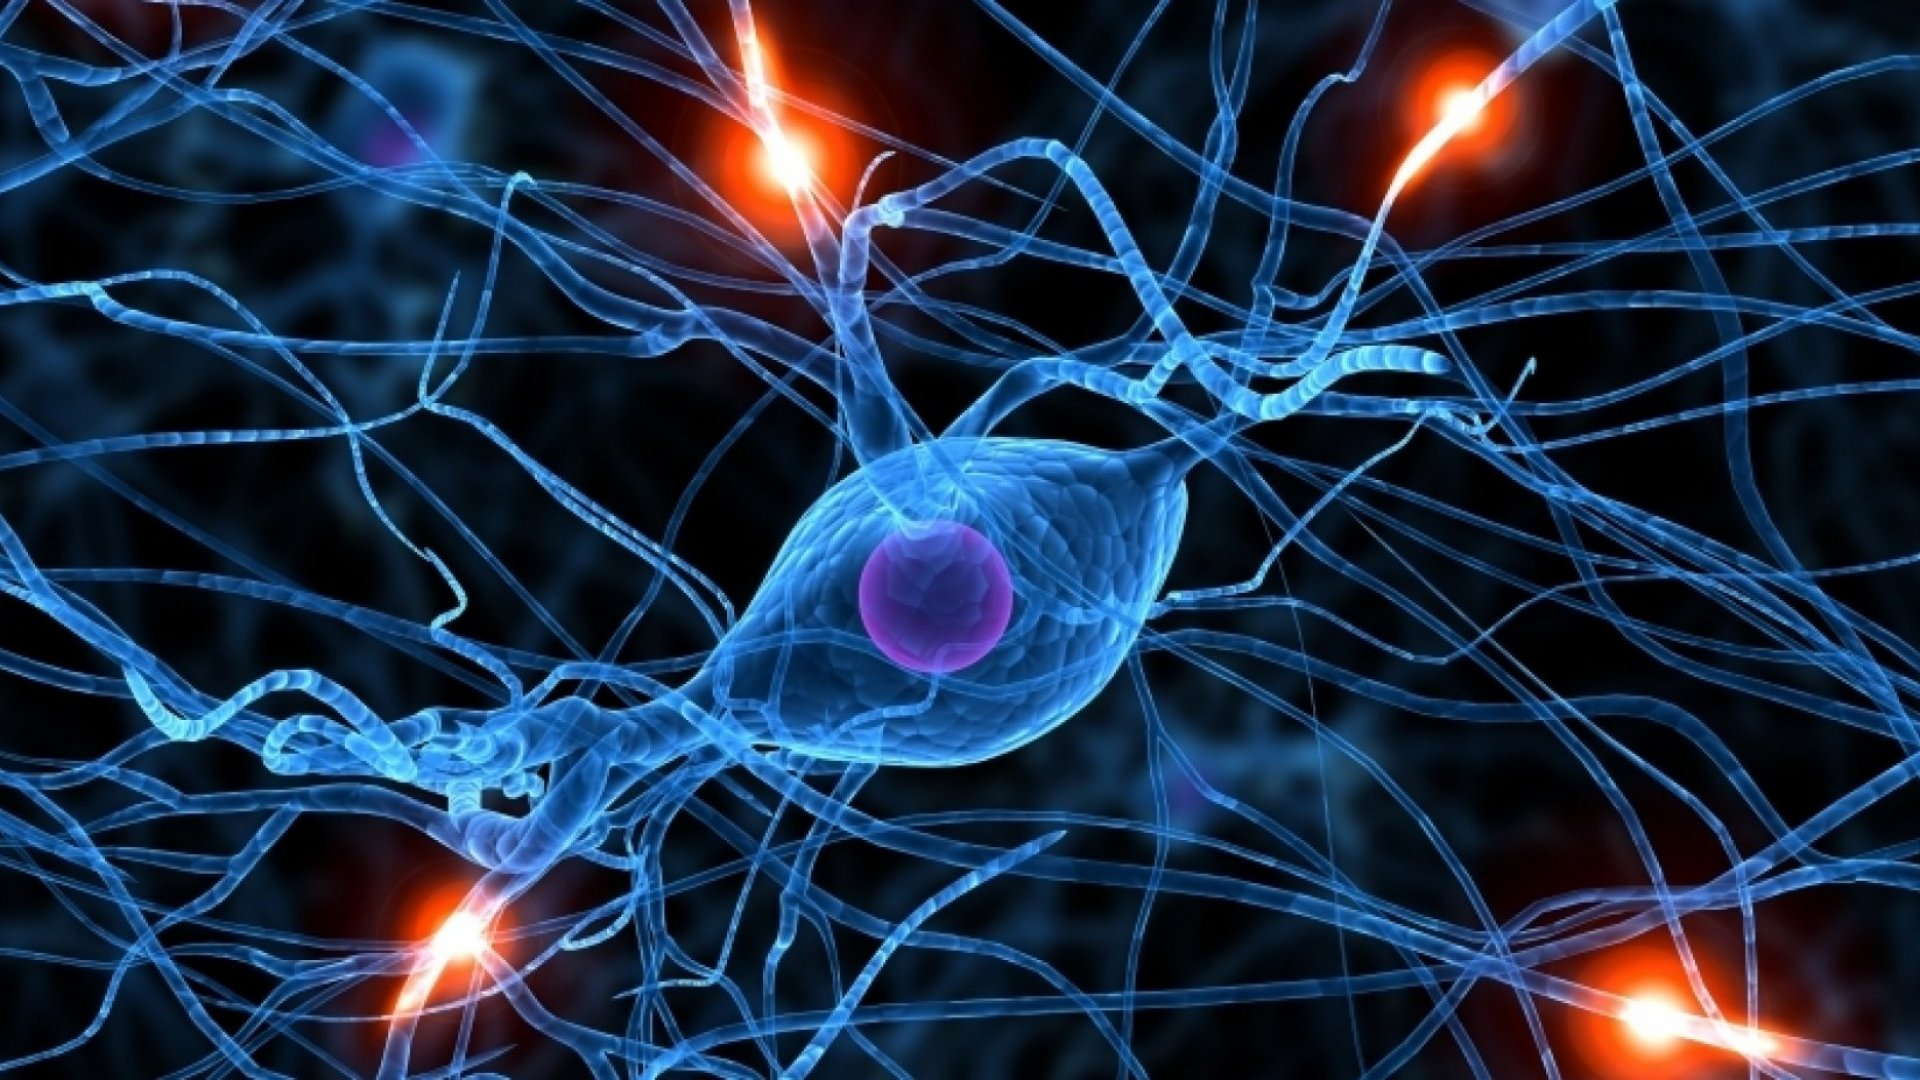 Science: Yes, It's Possible to Grow New Brain Cells